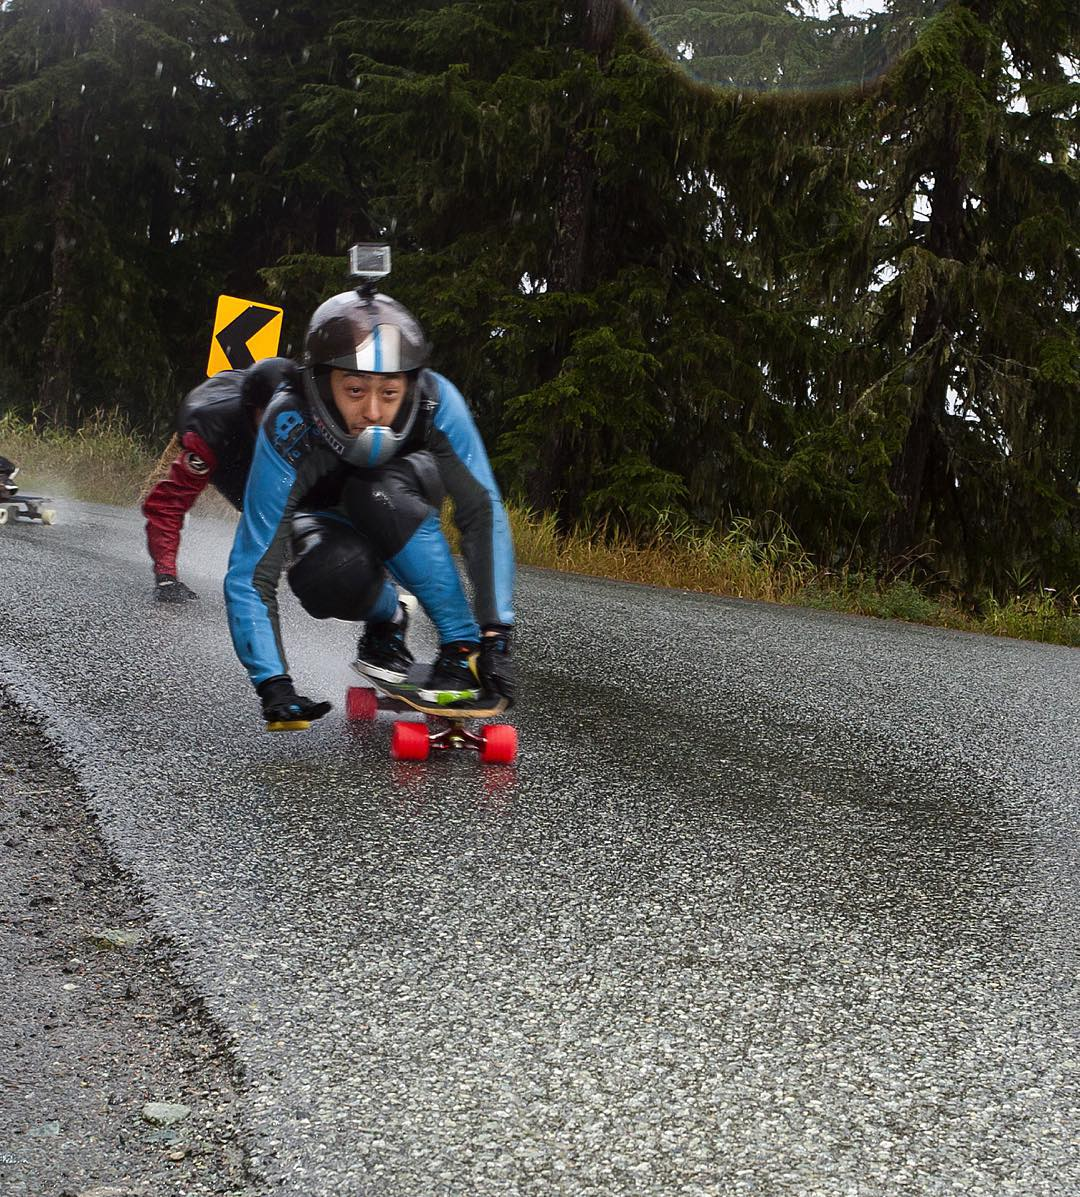 Wet socks? Try wet leathers.  The rain is bringing the @whistlerlbfest vibes back to #vancouver this long weekend but @be_choi didn't let it stop him from leading the pack